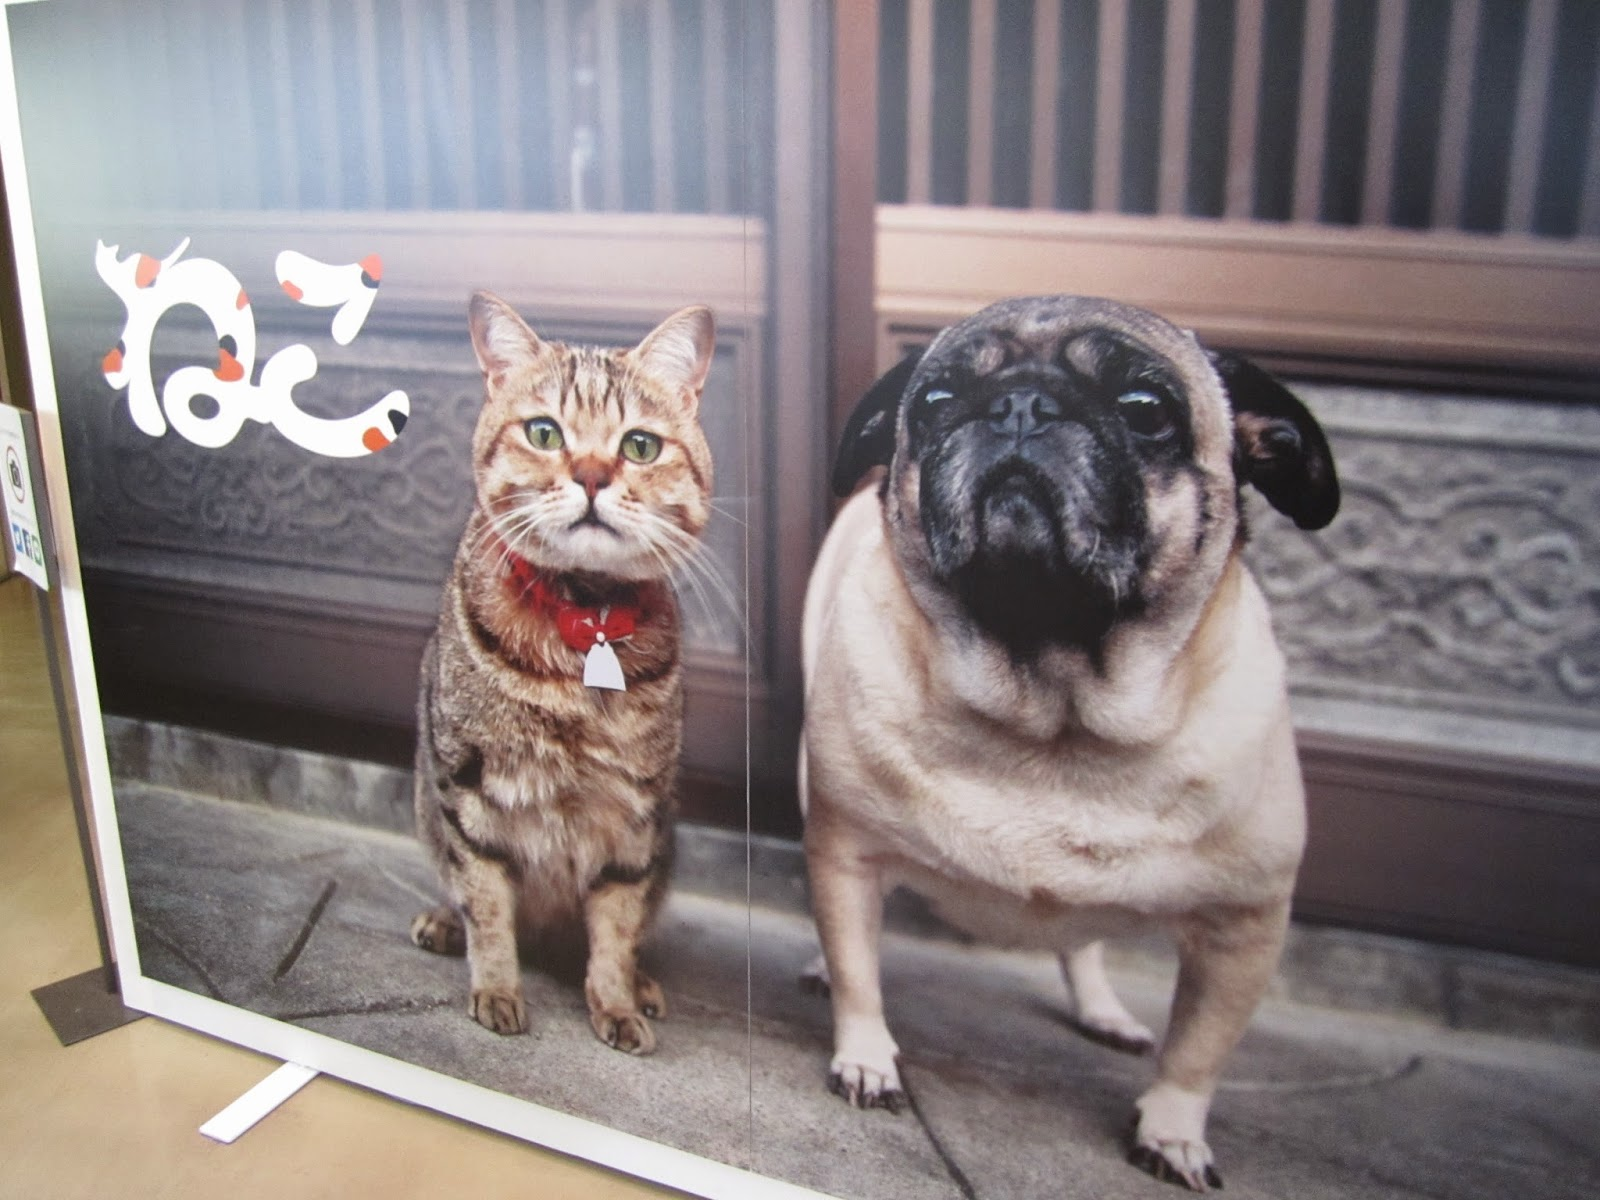 Hachinohe City Museum of Art Neko Iwago Mitsuaki Photography Exhibit 八戸美術館 岩合光明写真展「ねこ」